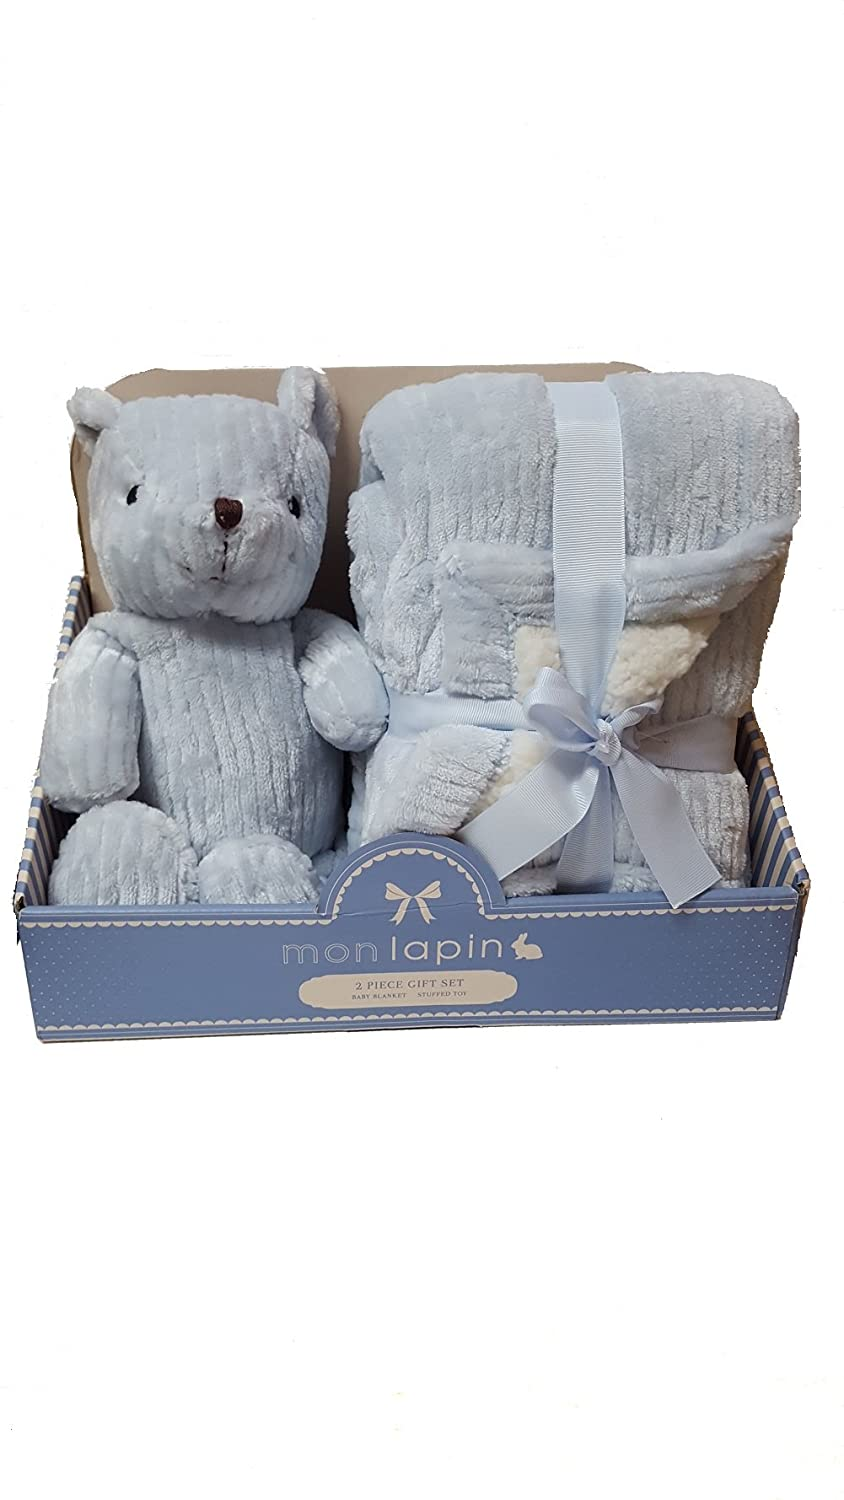 Amazon.com : Mon lapin 2 piece gift set Blanket And Stuffed Toy Blue ...